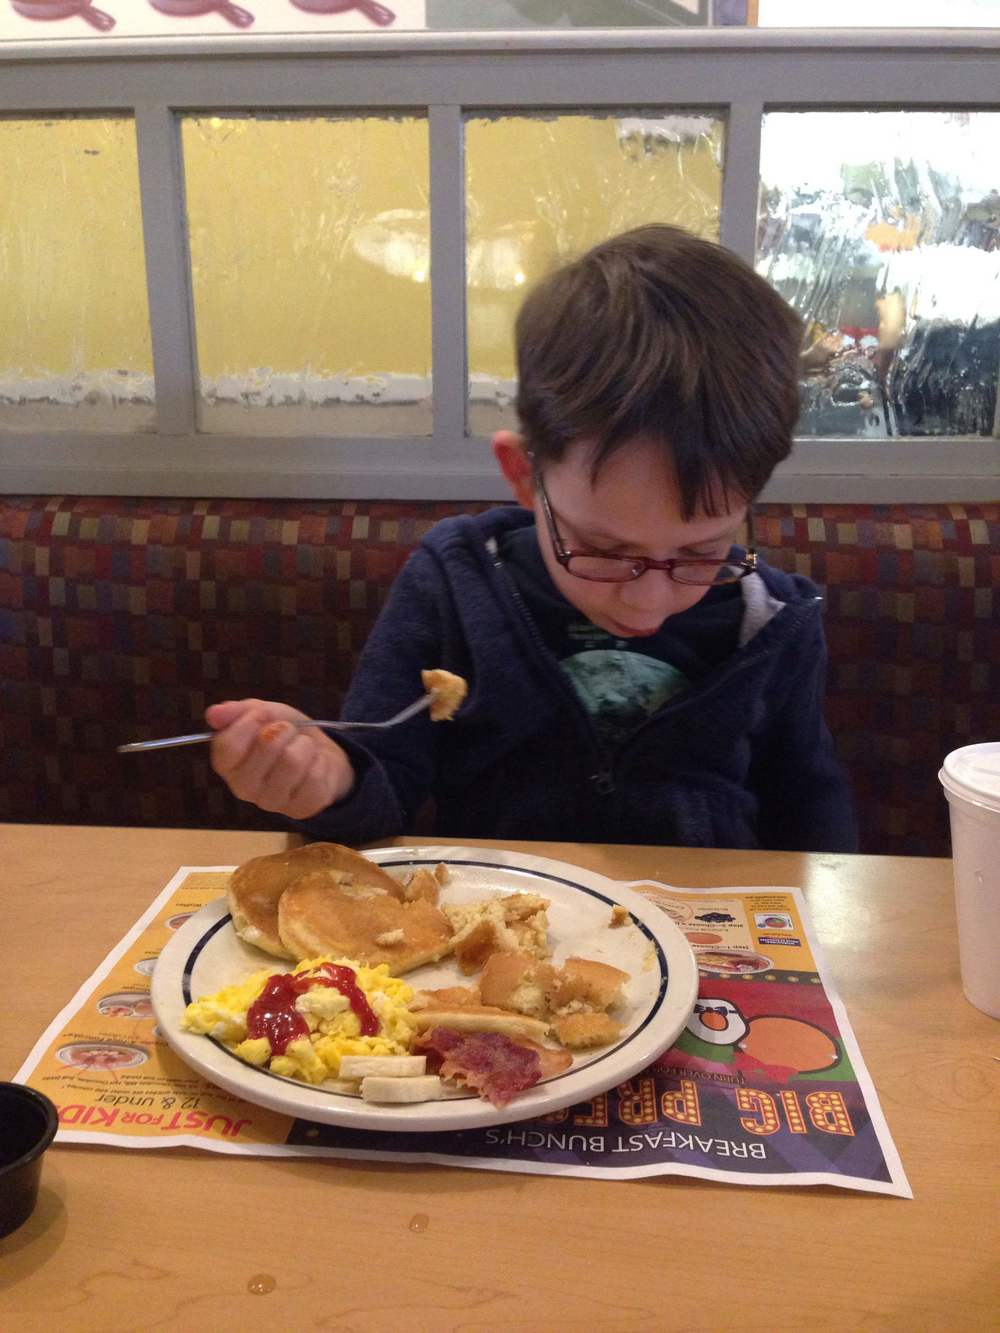 Saturday morning breakfast at IHOP-His favorite breakfast joint.